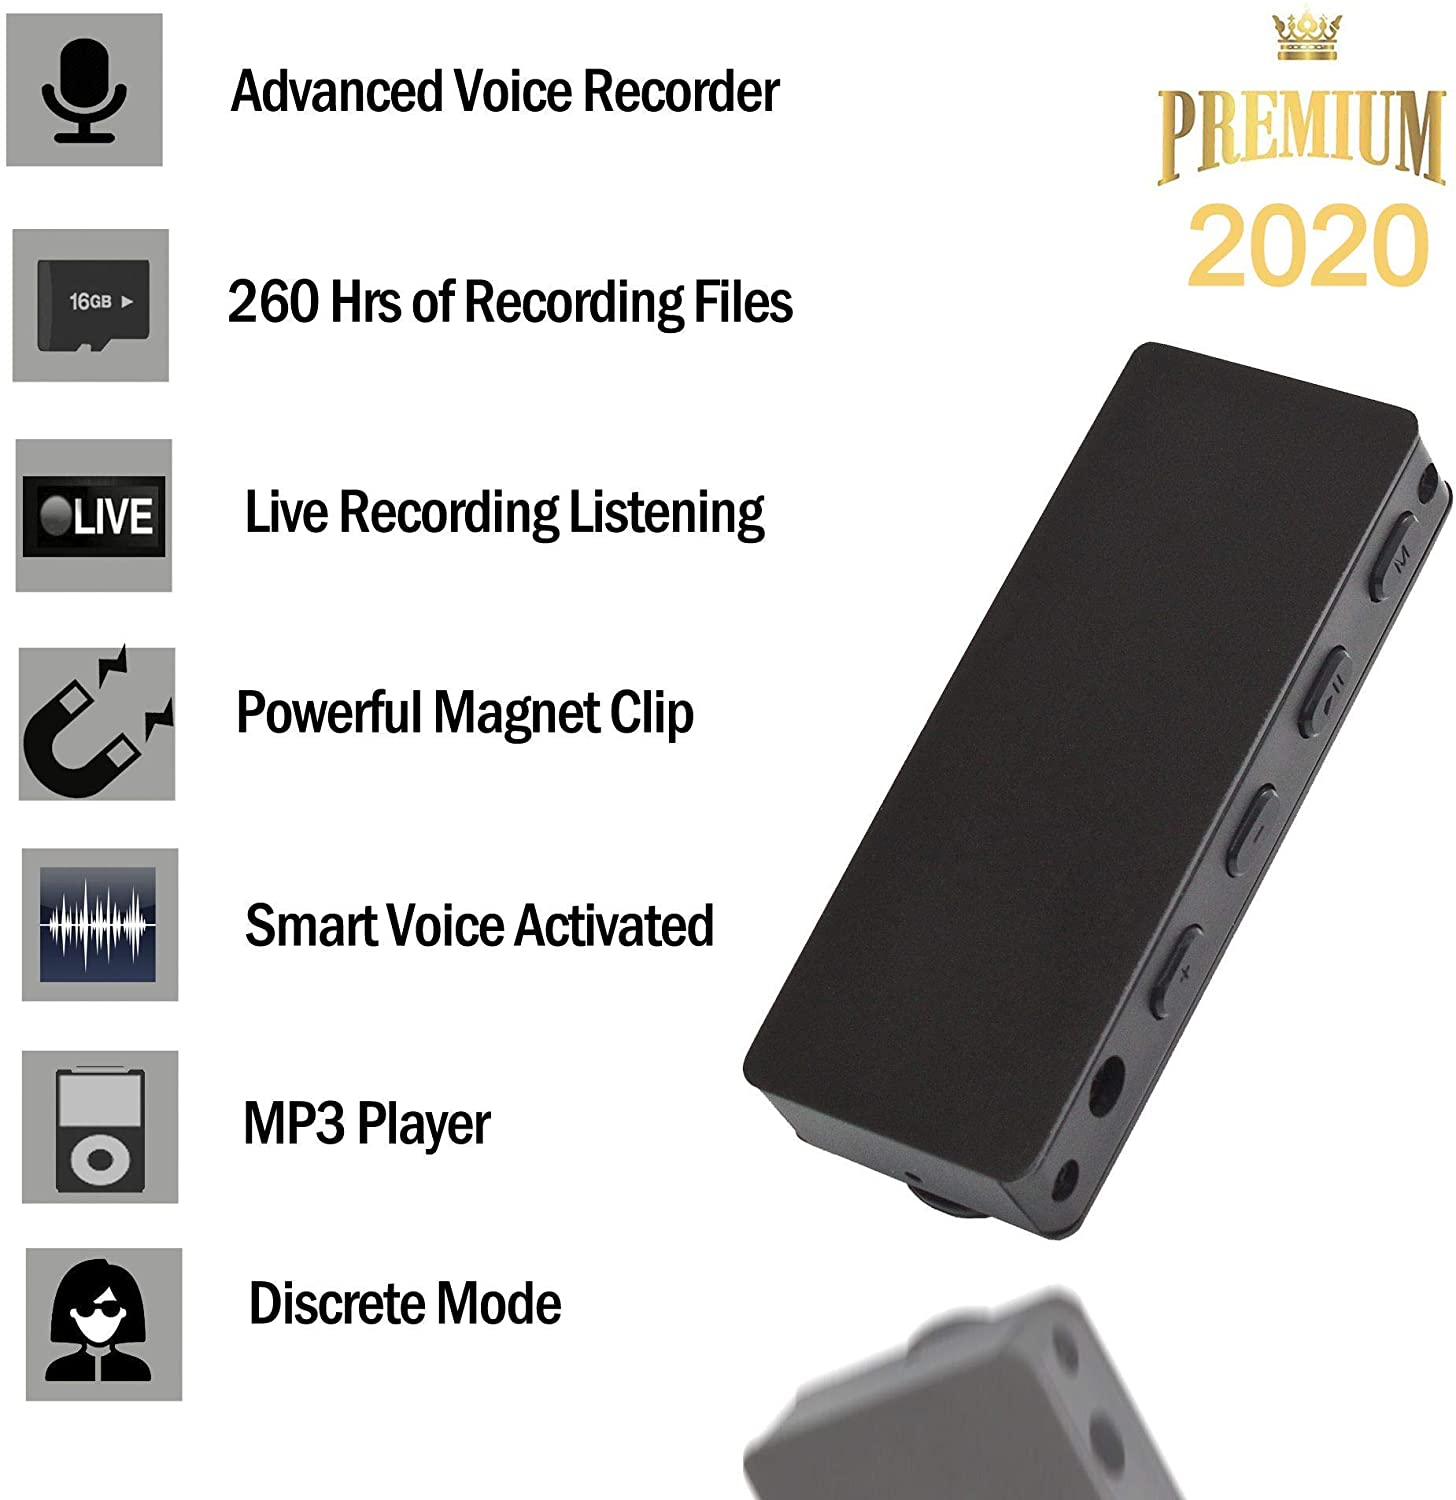 16GB Mini Voice Activated Recorder-TCTEC [Bonus Value] Easy to Use - Playback On The Go-MP3 Player -Live Recording Listening- Long Battery Life - Ultra Light - Durable…